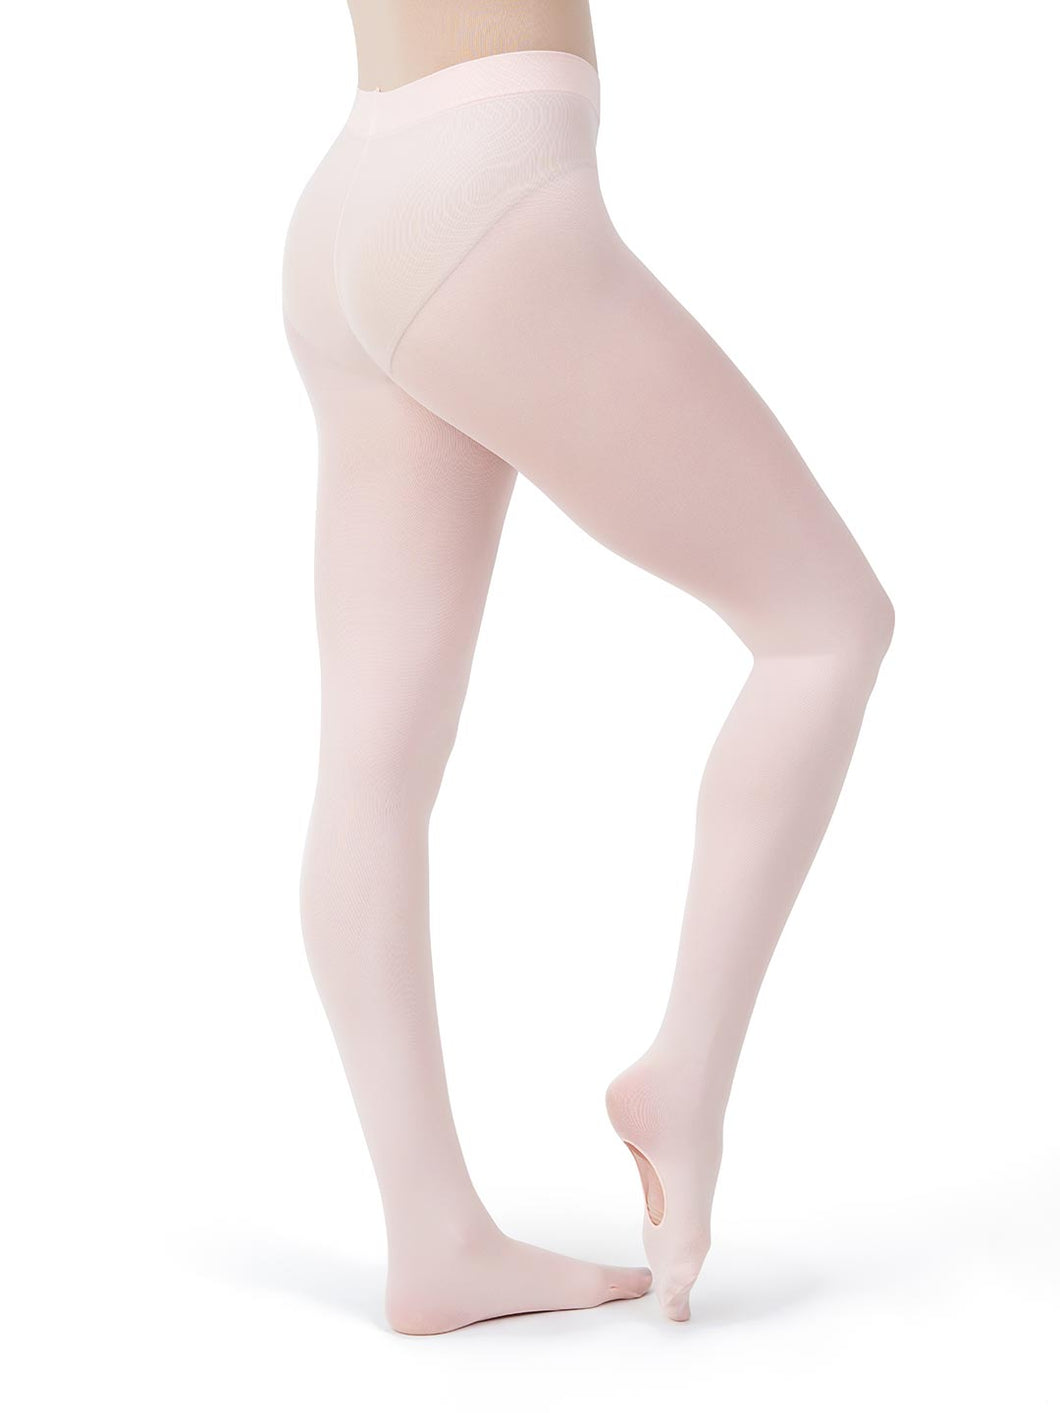 Capezio Ultra Soft  Adult Transition Tights  #1916, Adult Tights